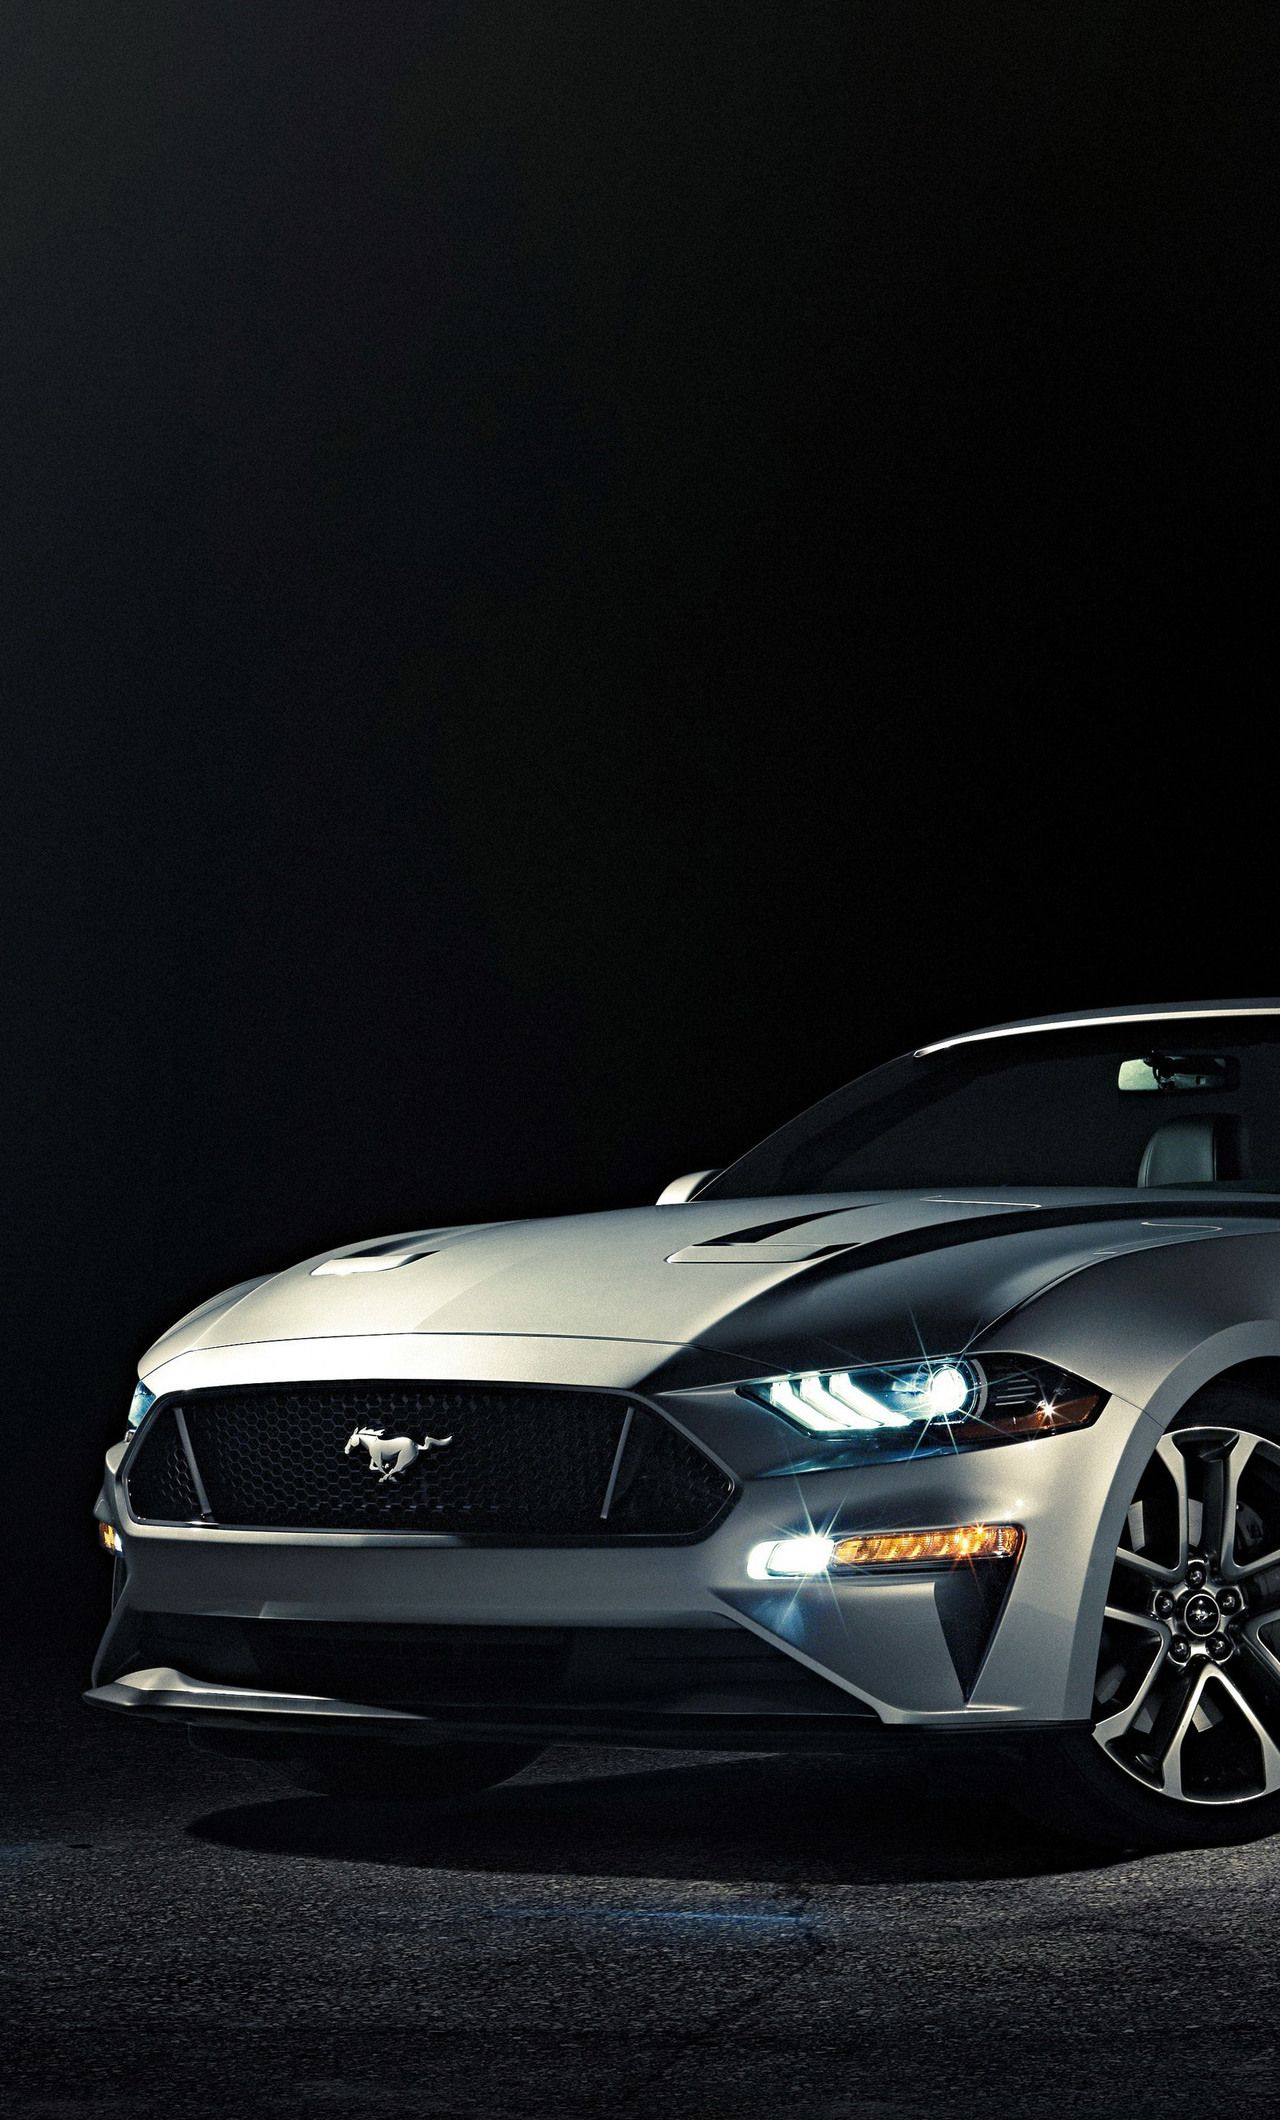 Mustang Iphone Wallpapers Top Free Mustang Iphone